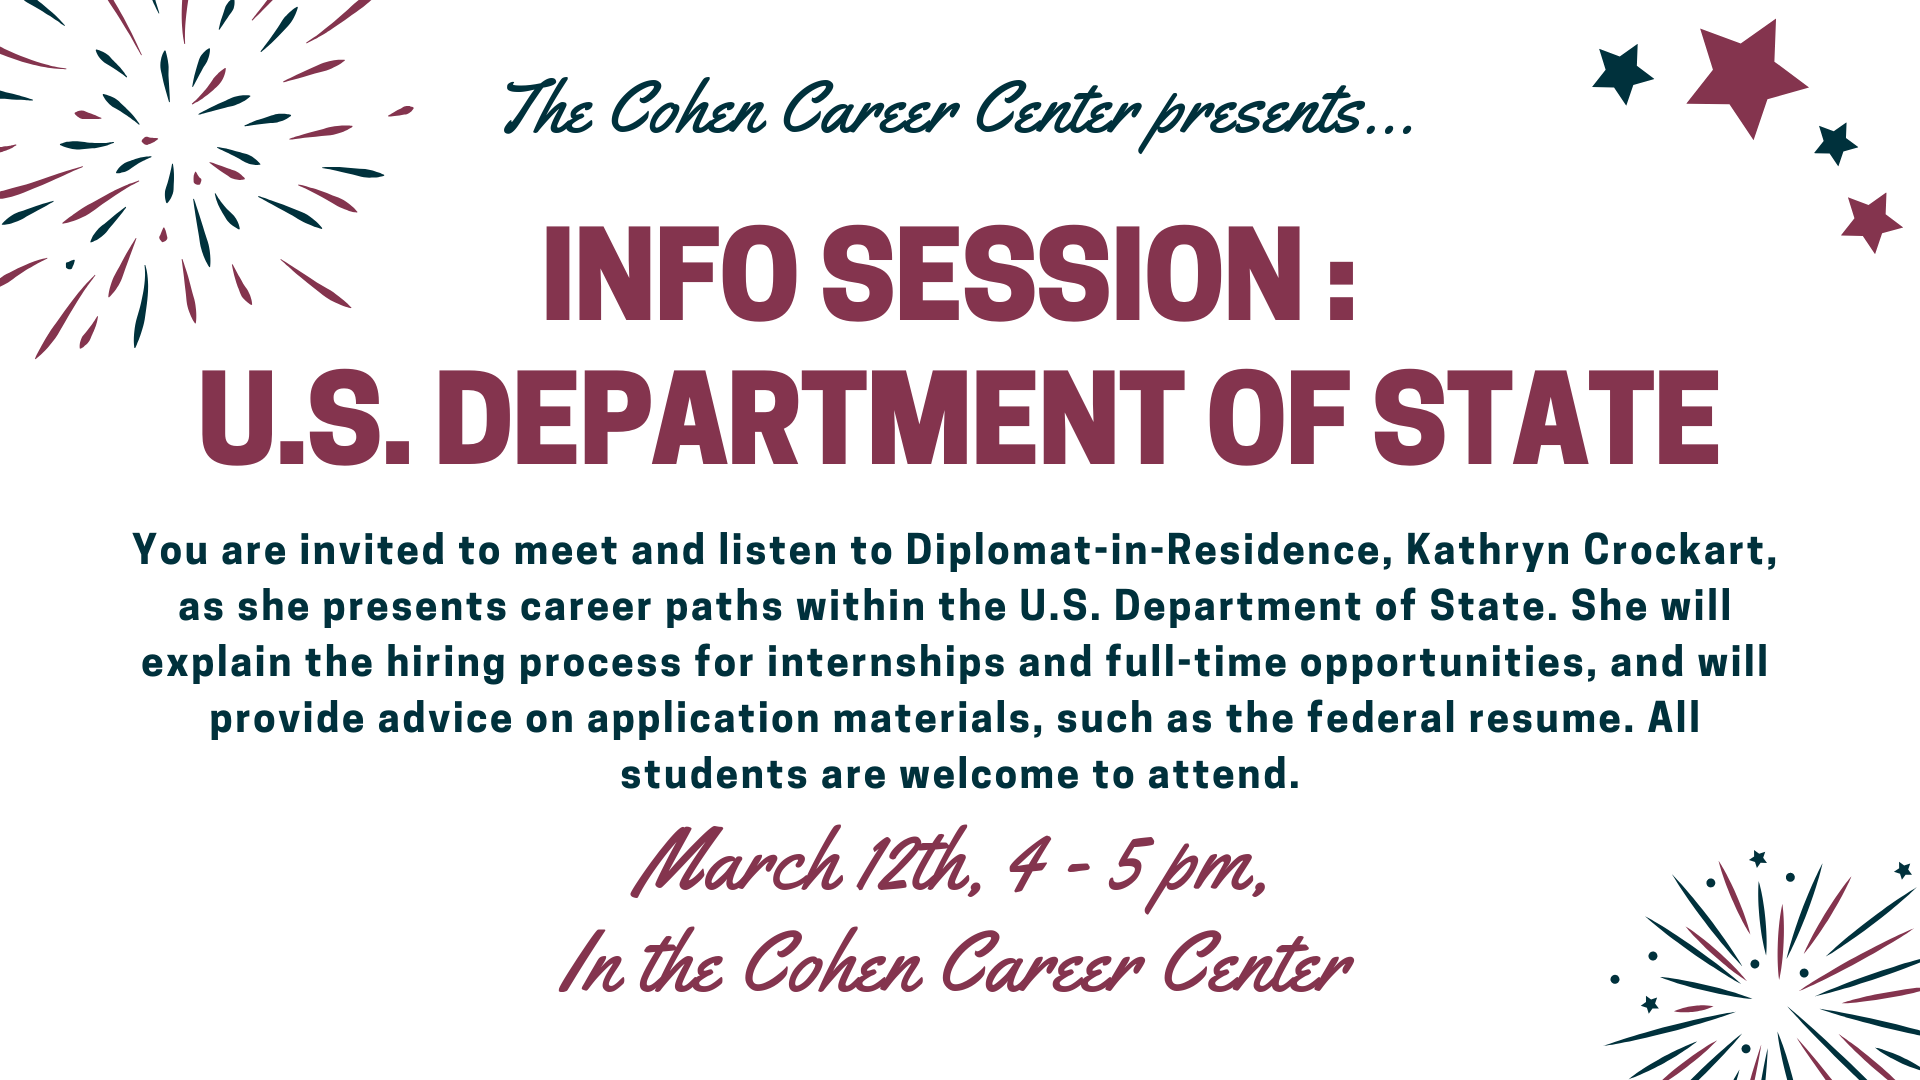 info-session_-us-department-of-state.png